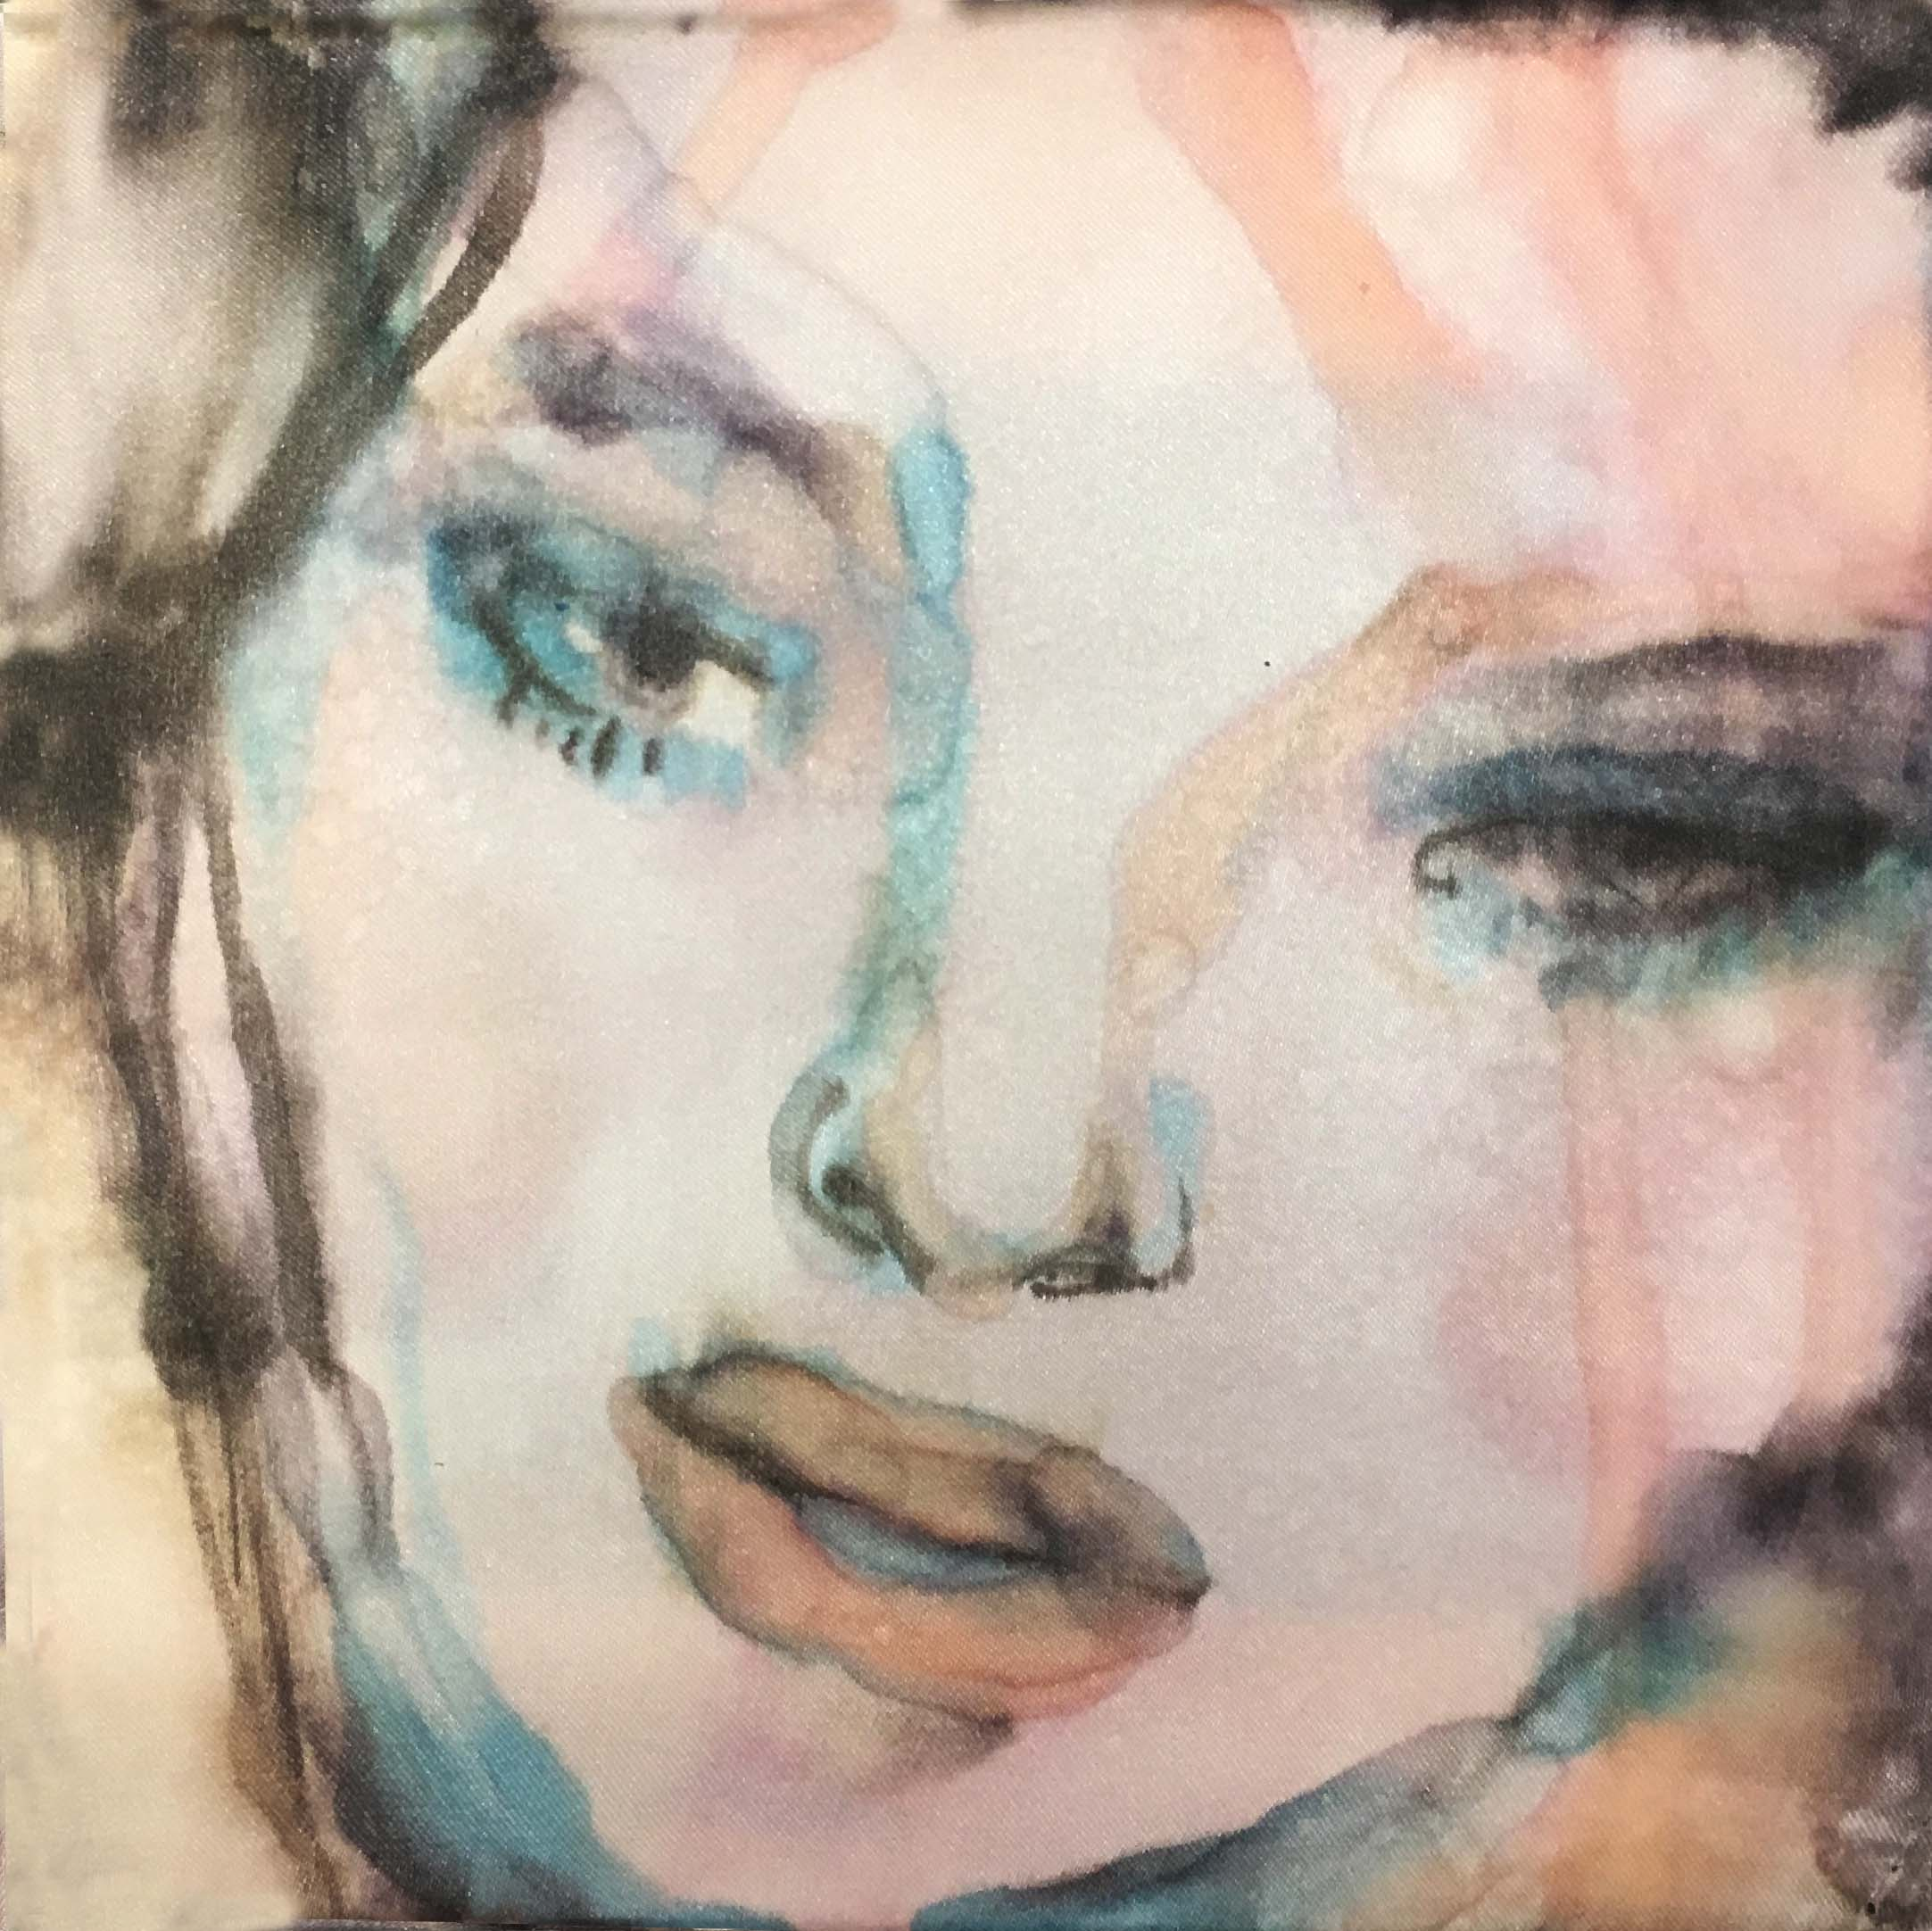 20x20cm, watercolour on silk